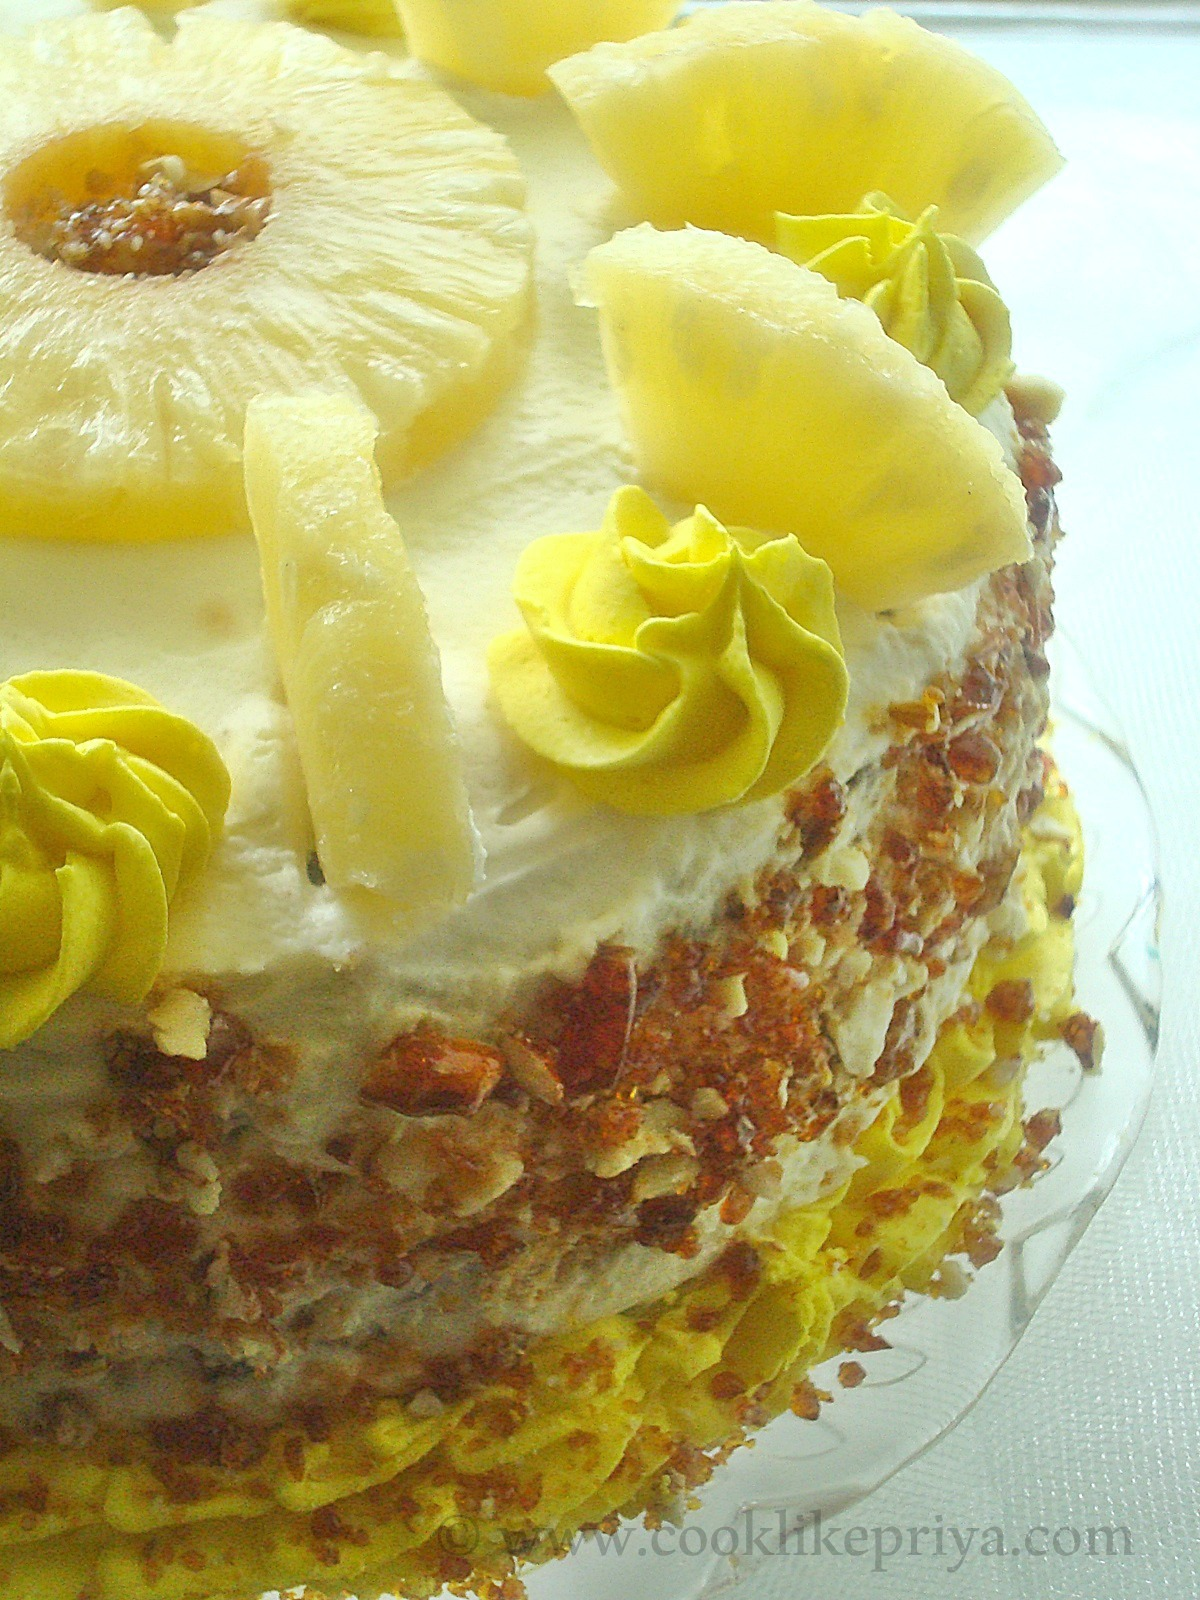 Pineapple Gateau Recipe